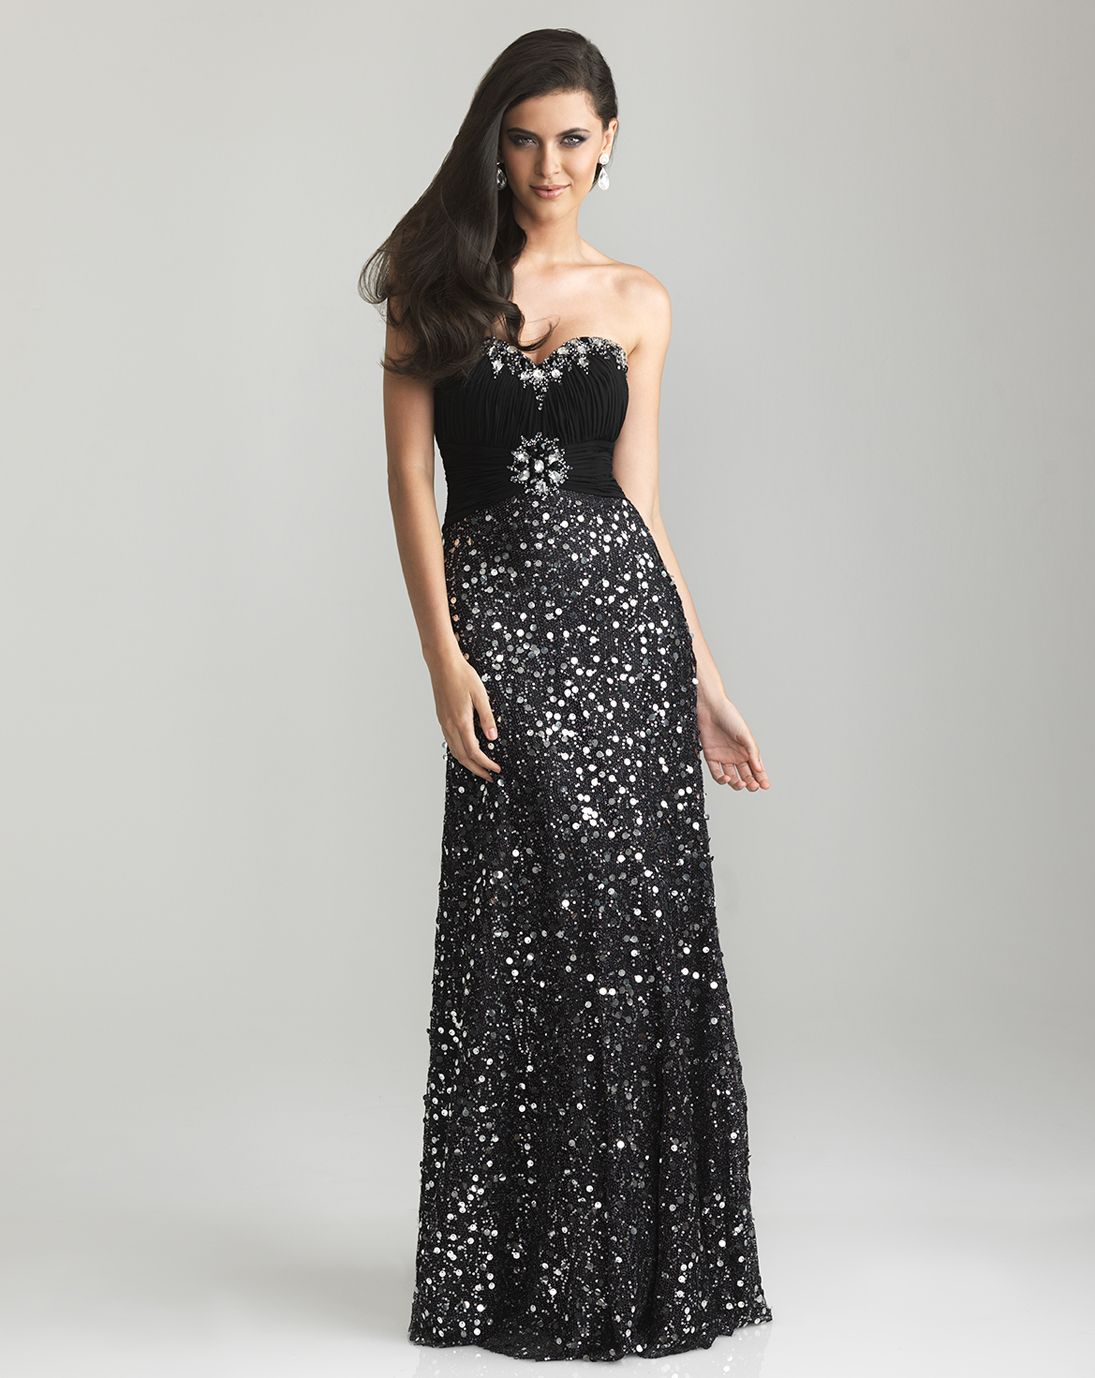 Black Sequin Prom Dress Photo Album - Klarosa